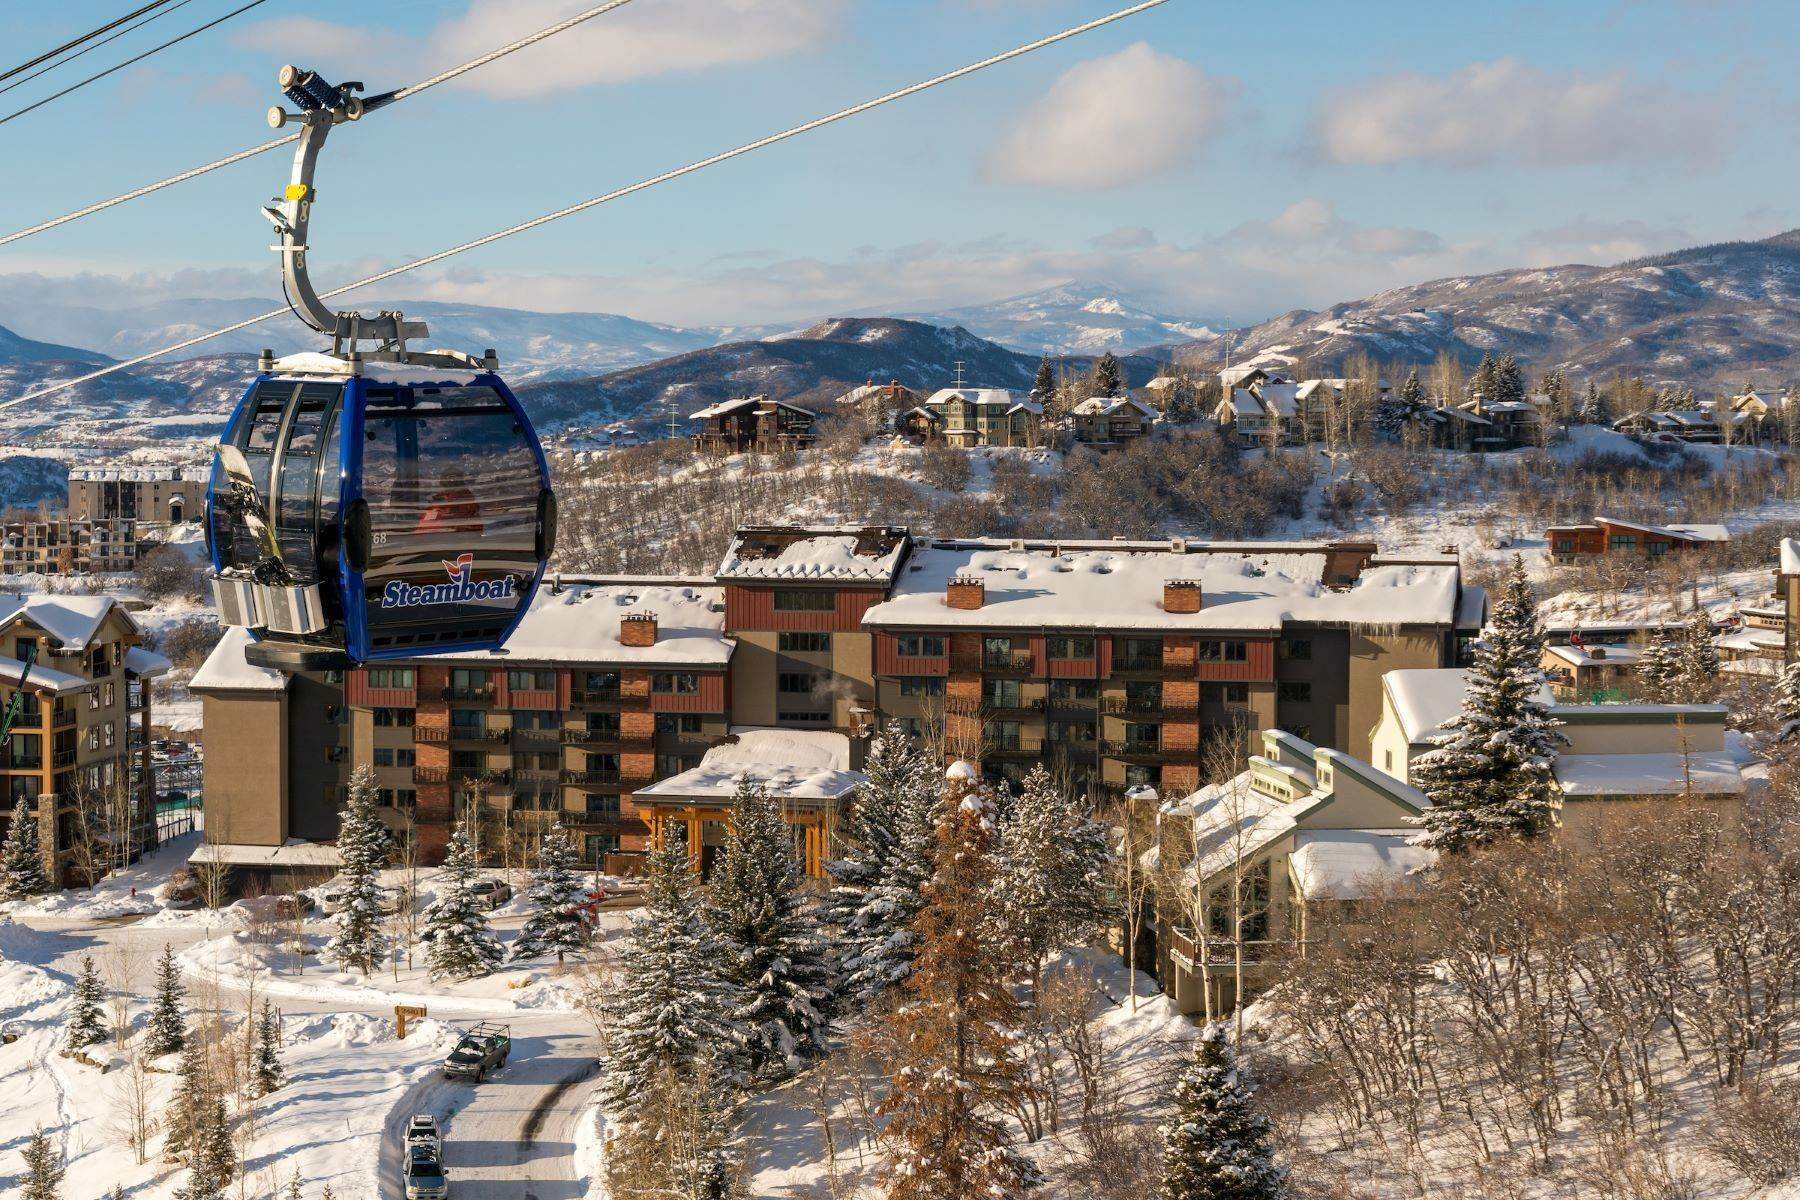 Single Family Homes for Sale at Ski-in/ski-out at Bear Claw 2420 Ski Trail Lane Unit #409 Steamboat Springs, Colorado 80487 United States